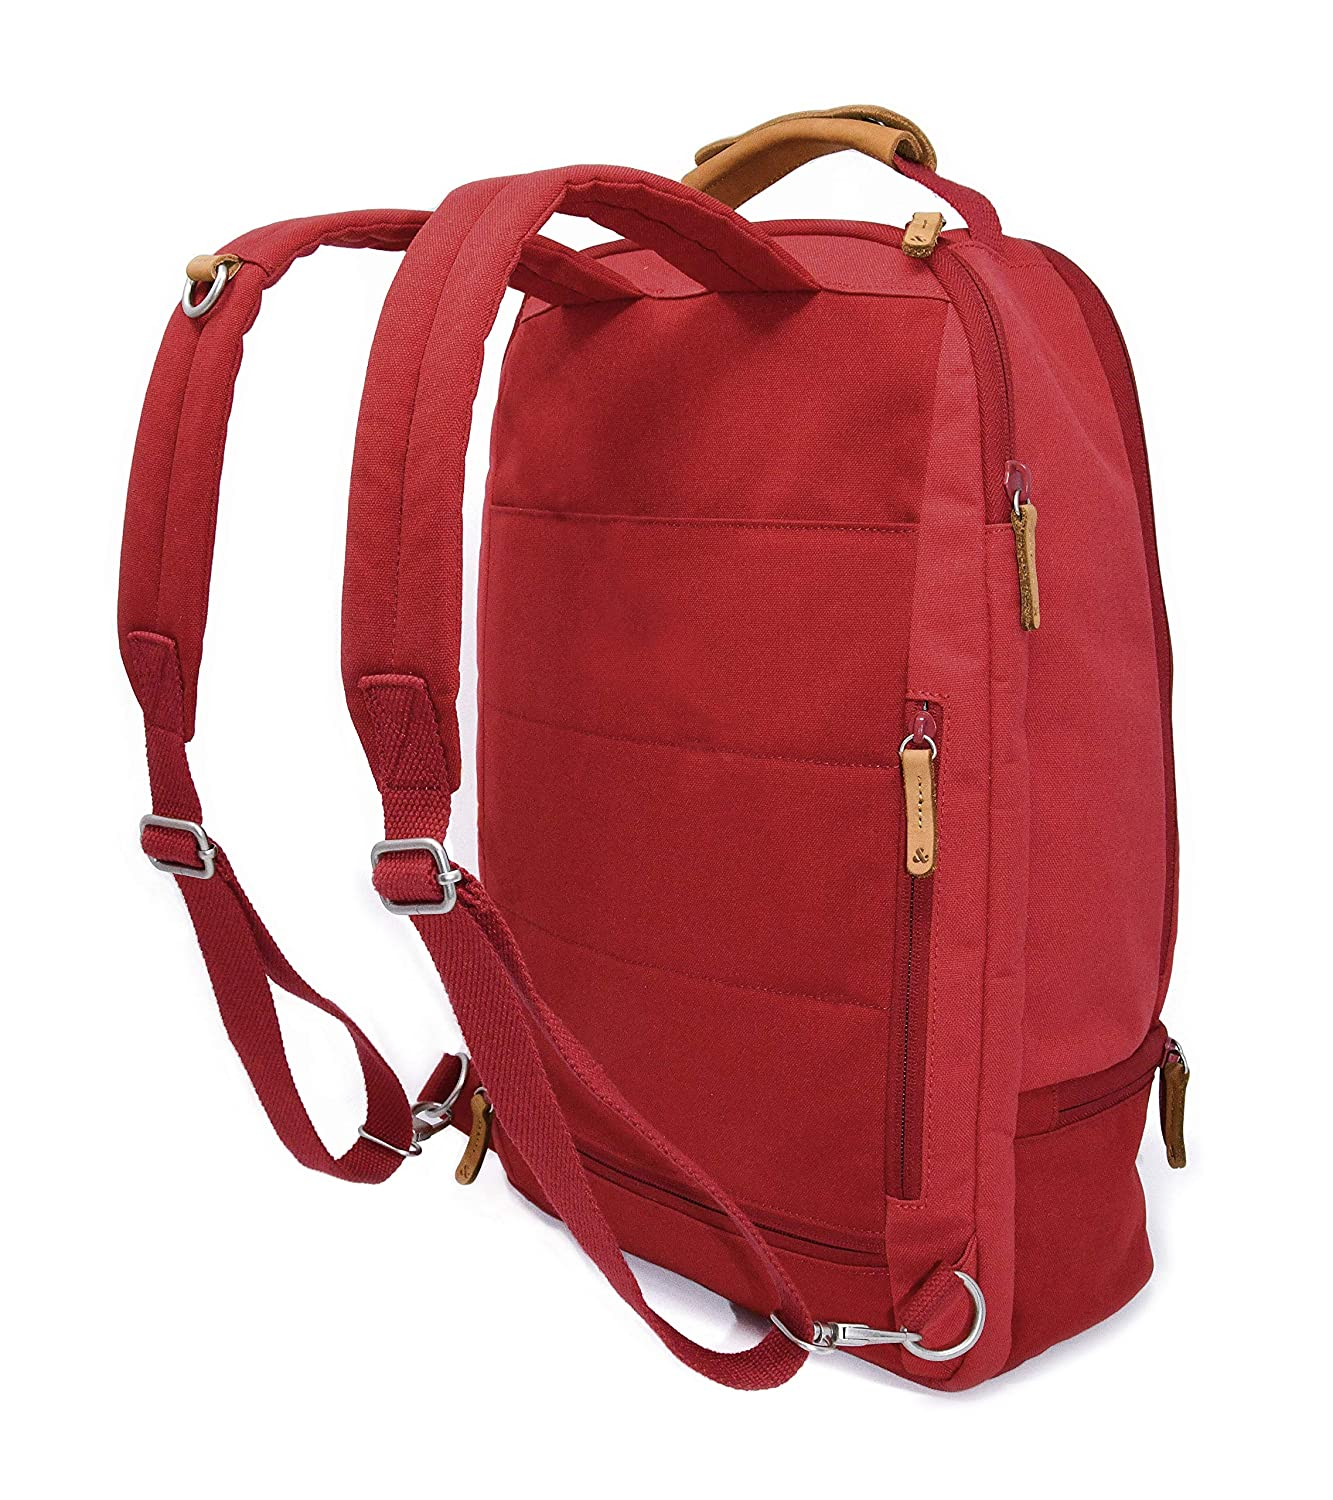 8aff0bdf24992 Amazon.com  Amber   Ash Everyday Backpack - Slim and Durable Bag for  School